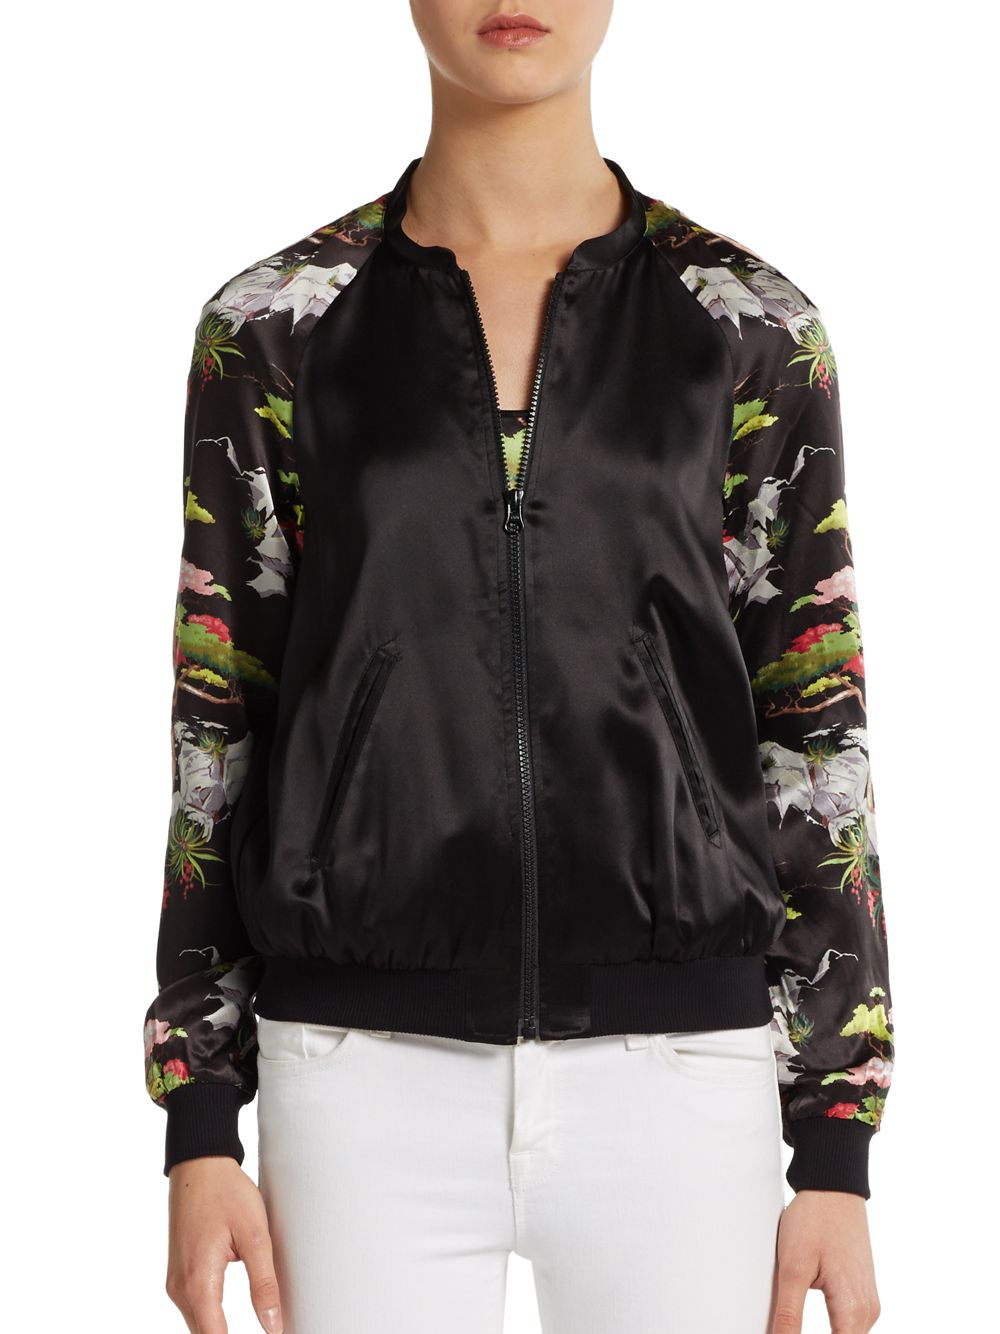 Silk Baseball Jacket Jacketin